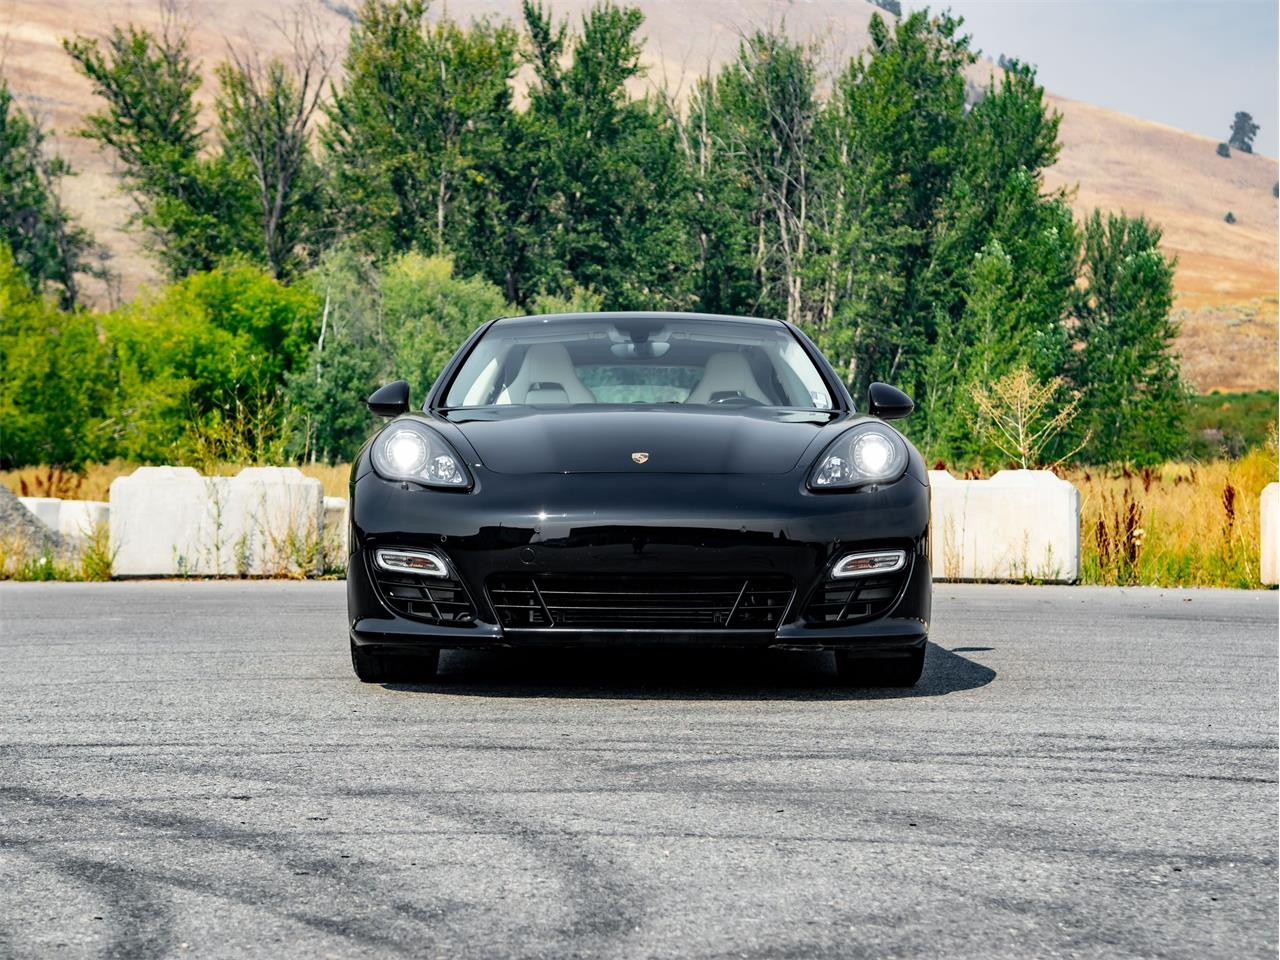 2013 Porsche Panamera (CC-1388014) for sale in Kelowna, British Columbia